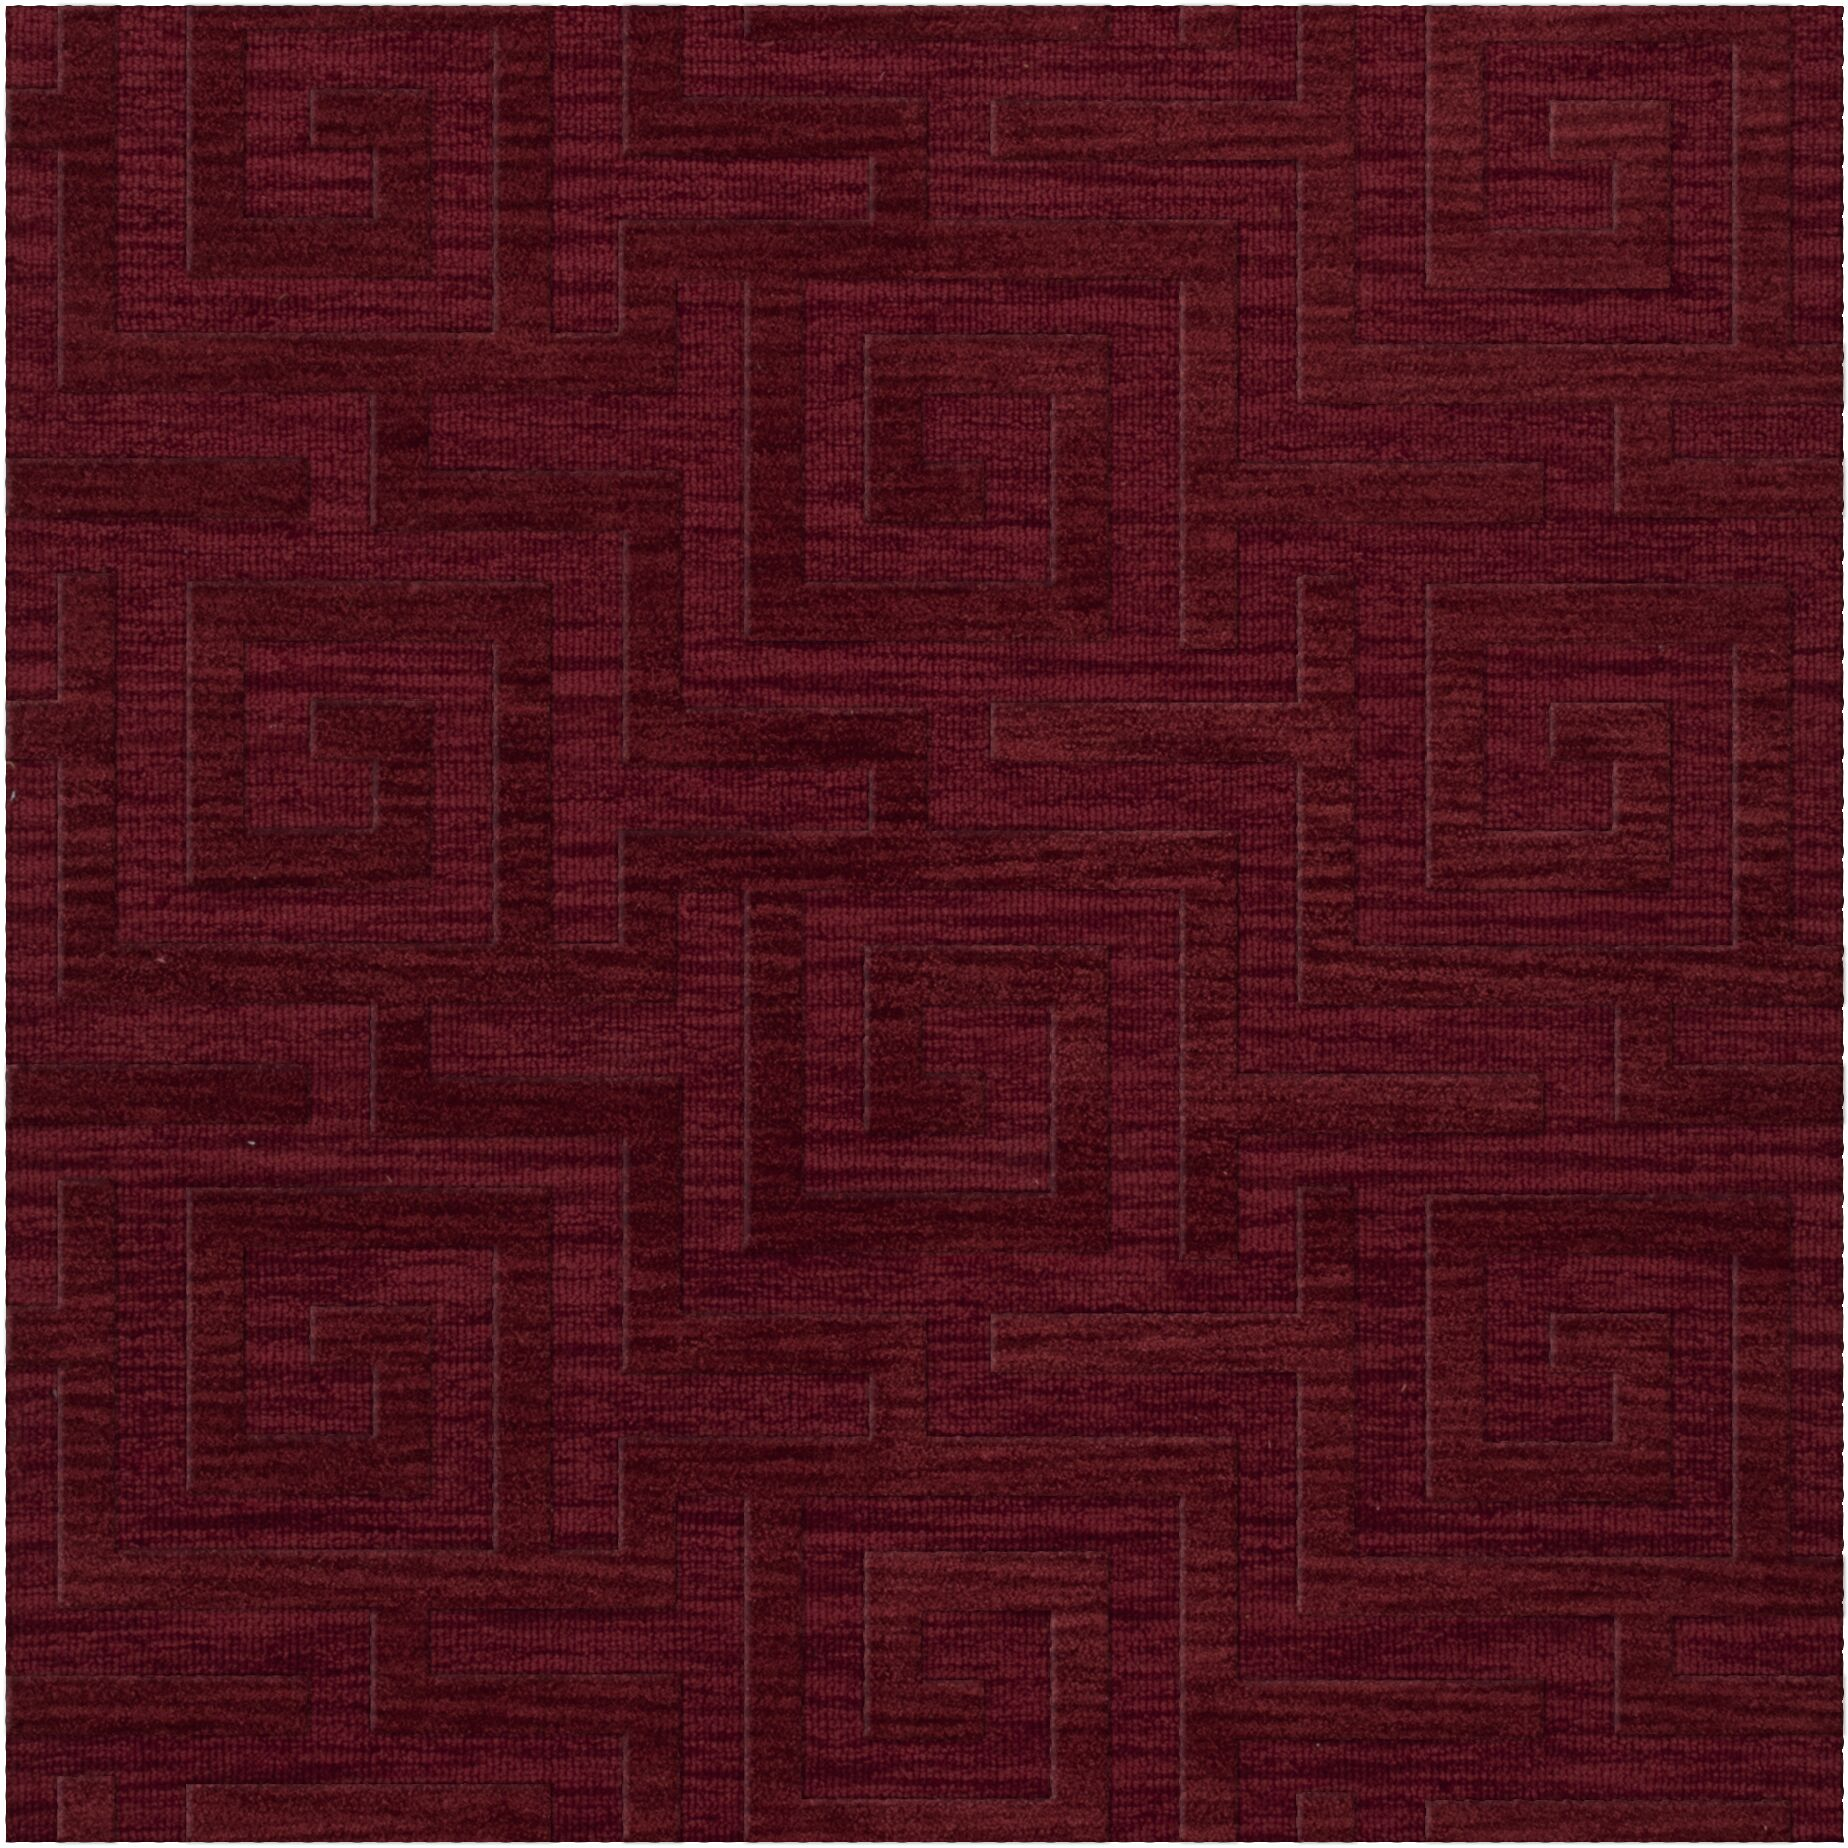 Dover Tufted Wool Rich Red Area Rug Rug Size: Square 6'